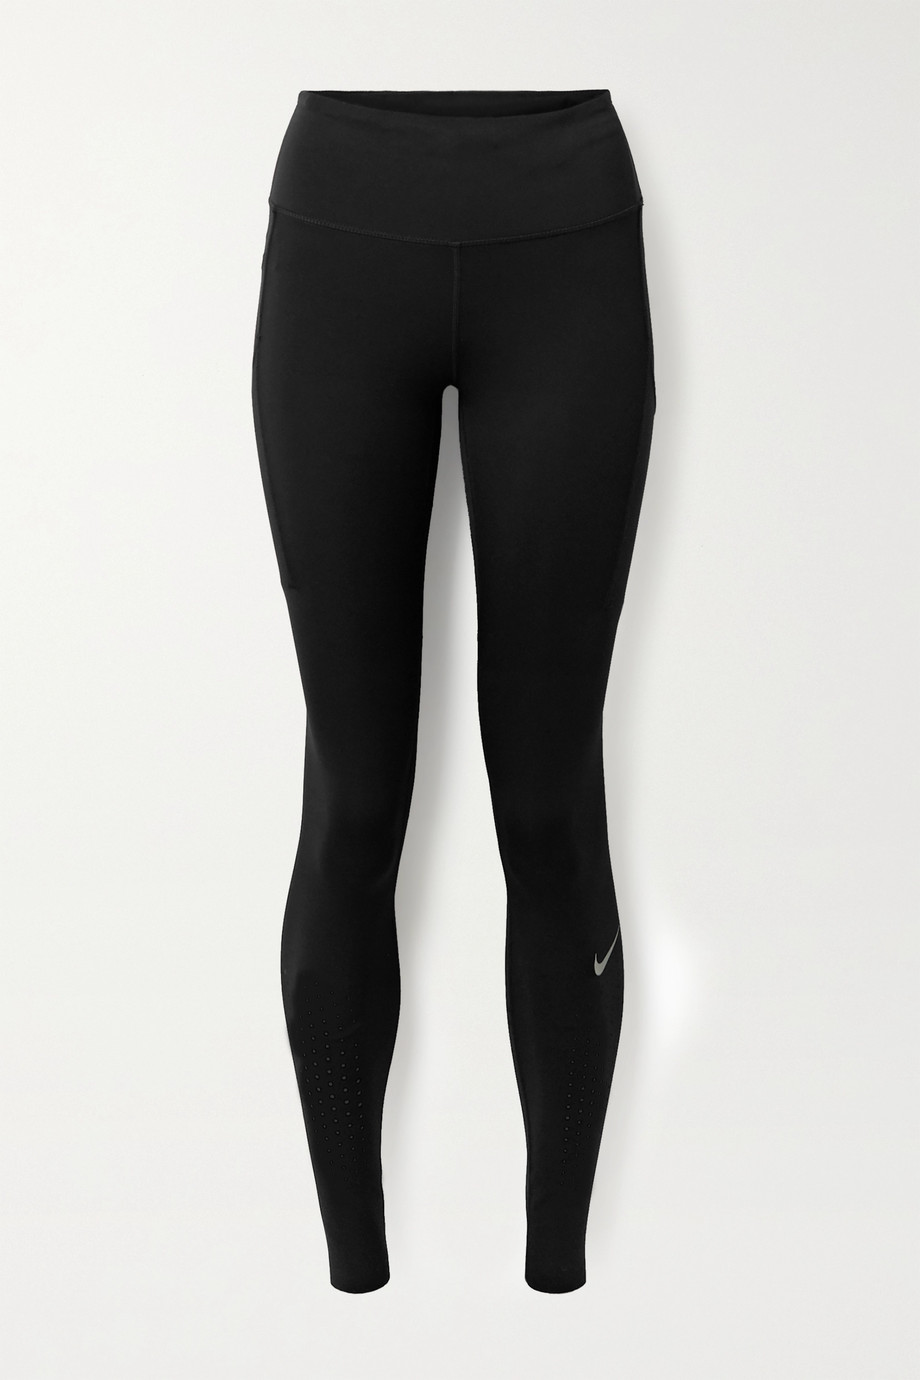 Nike Epic Lux perforierte Leggings aus Dri-FIT-Material